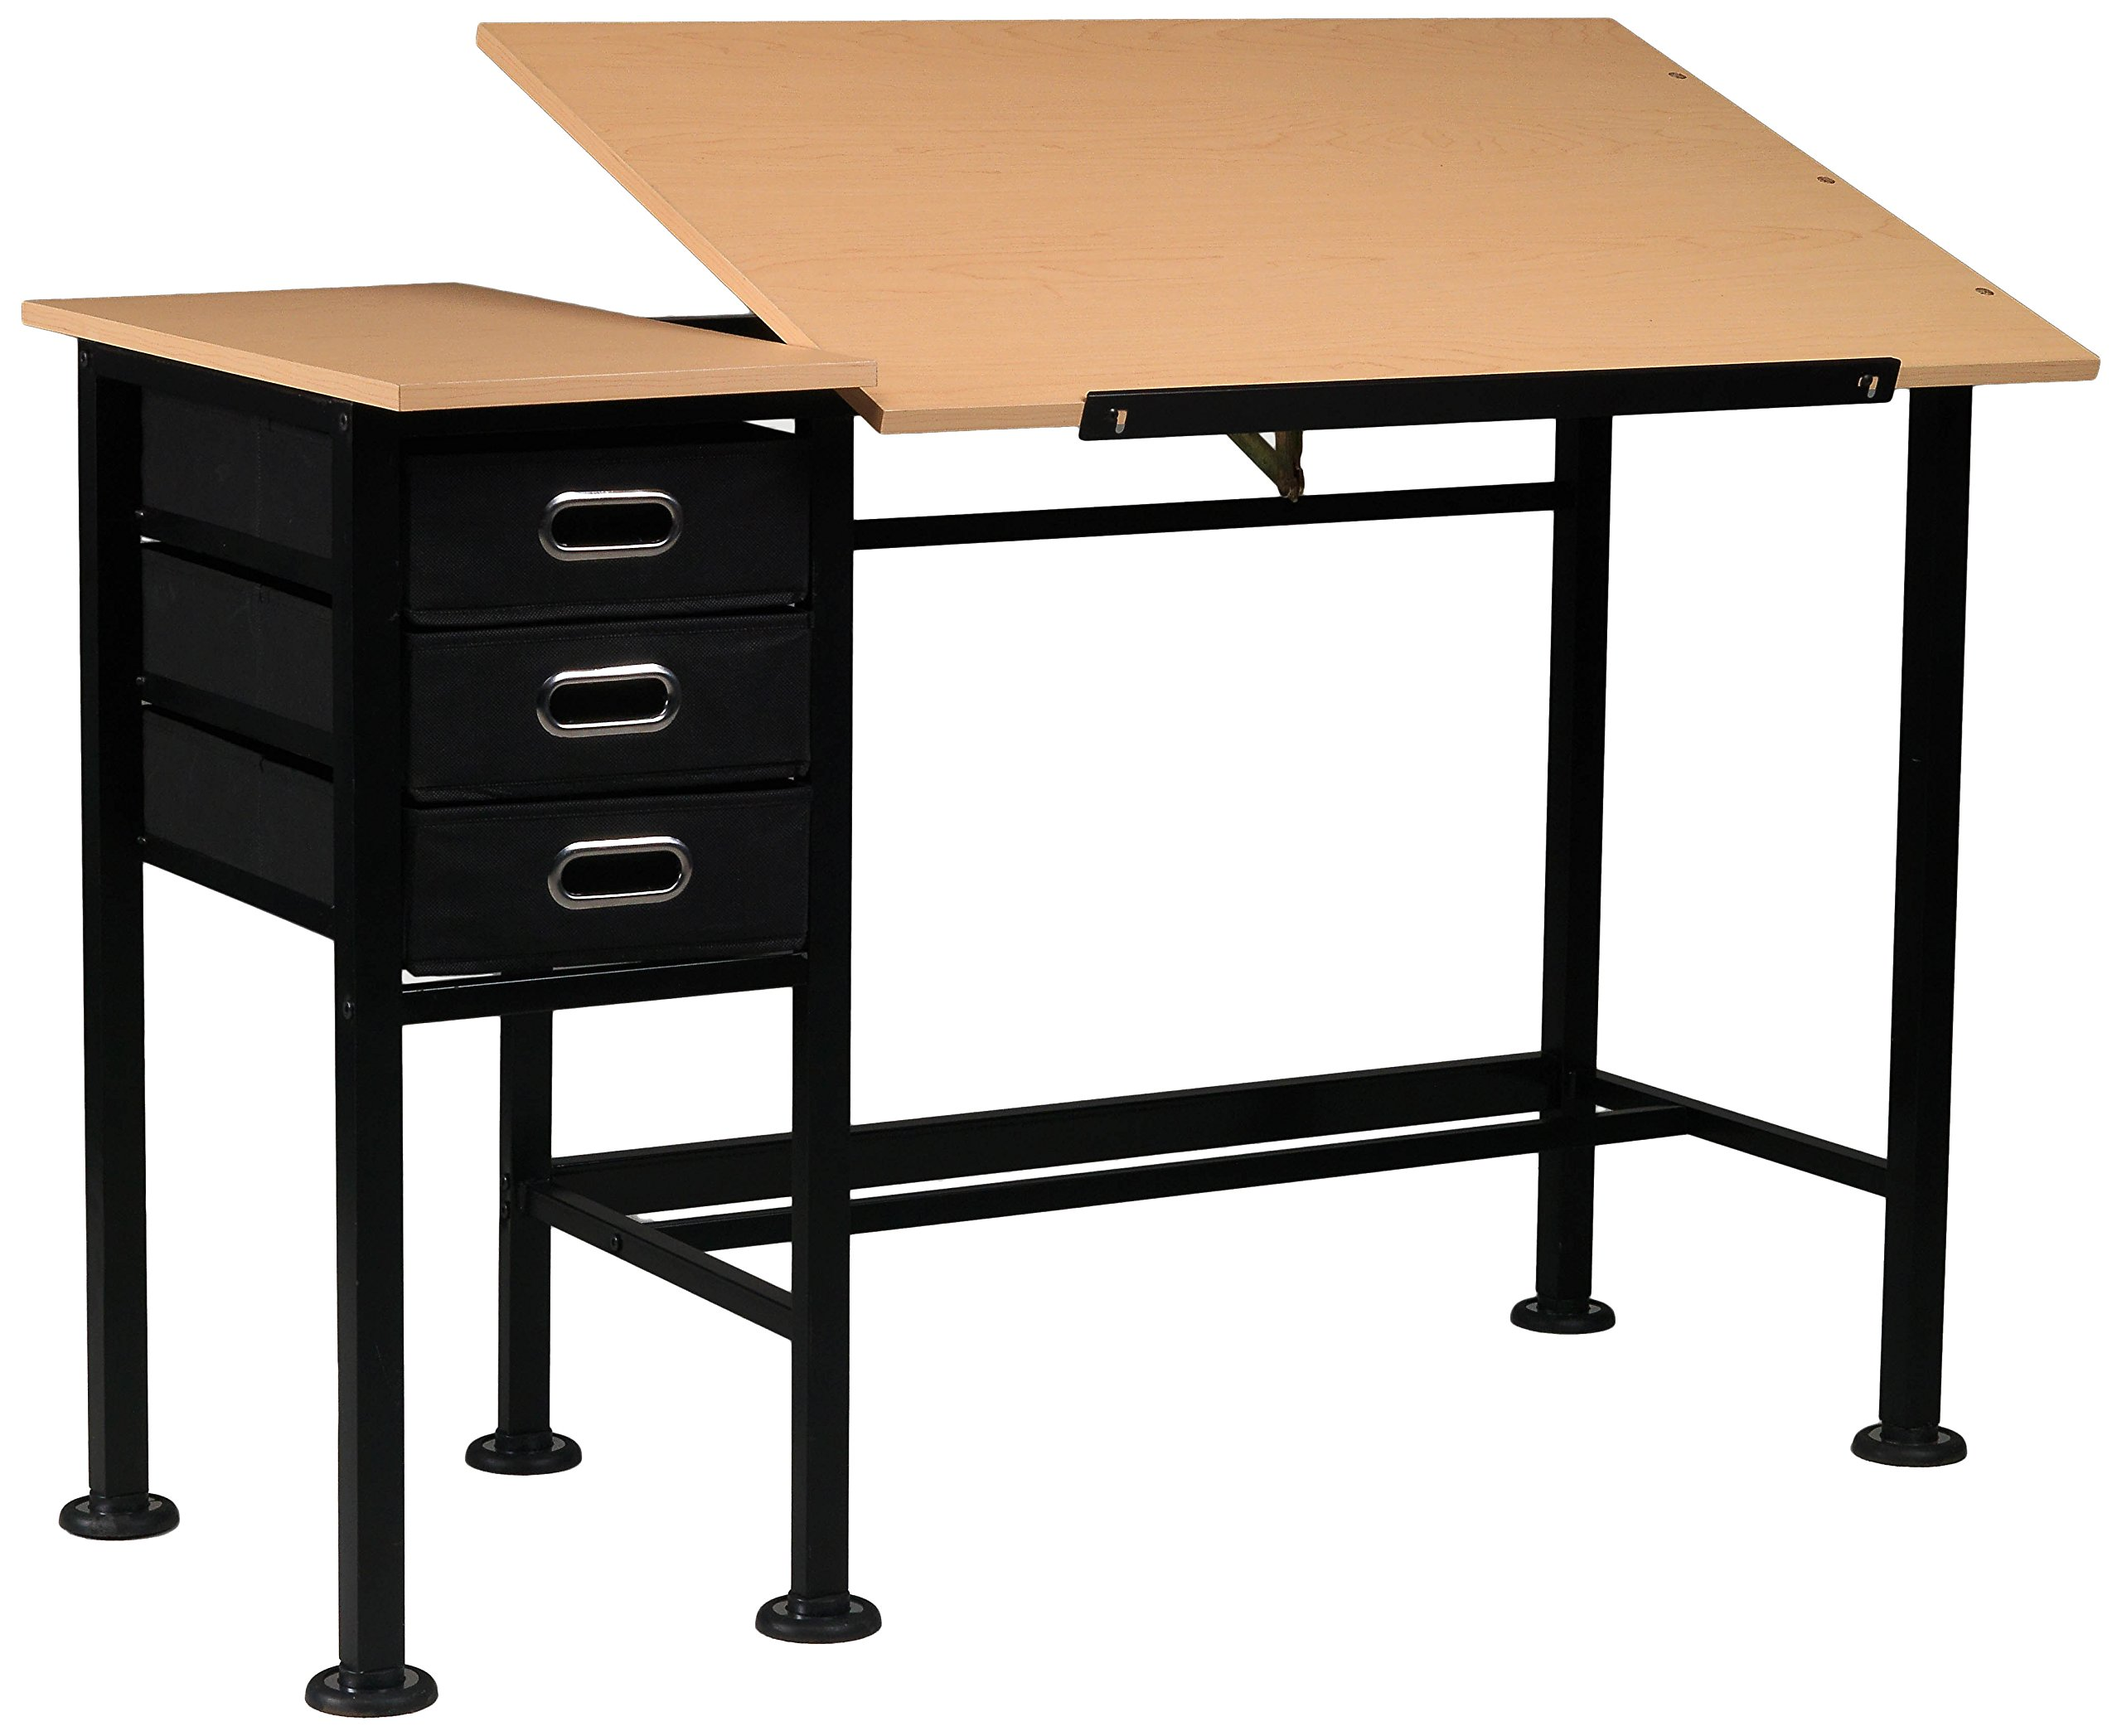 Martin Universal Design U-DS1950B Dorchester Split Top Craft Table, Black by Martin Universal Design